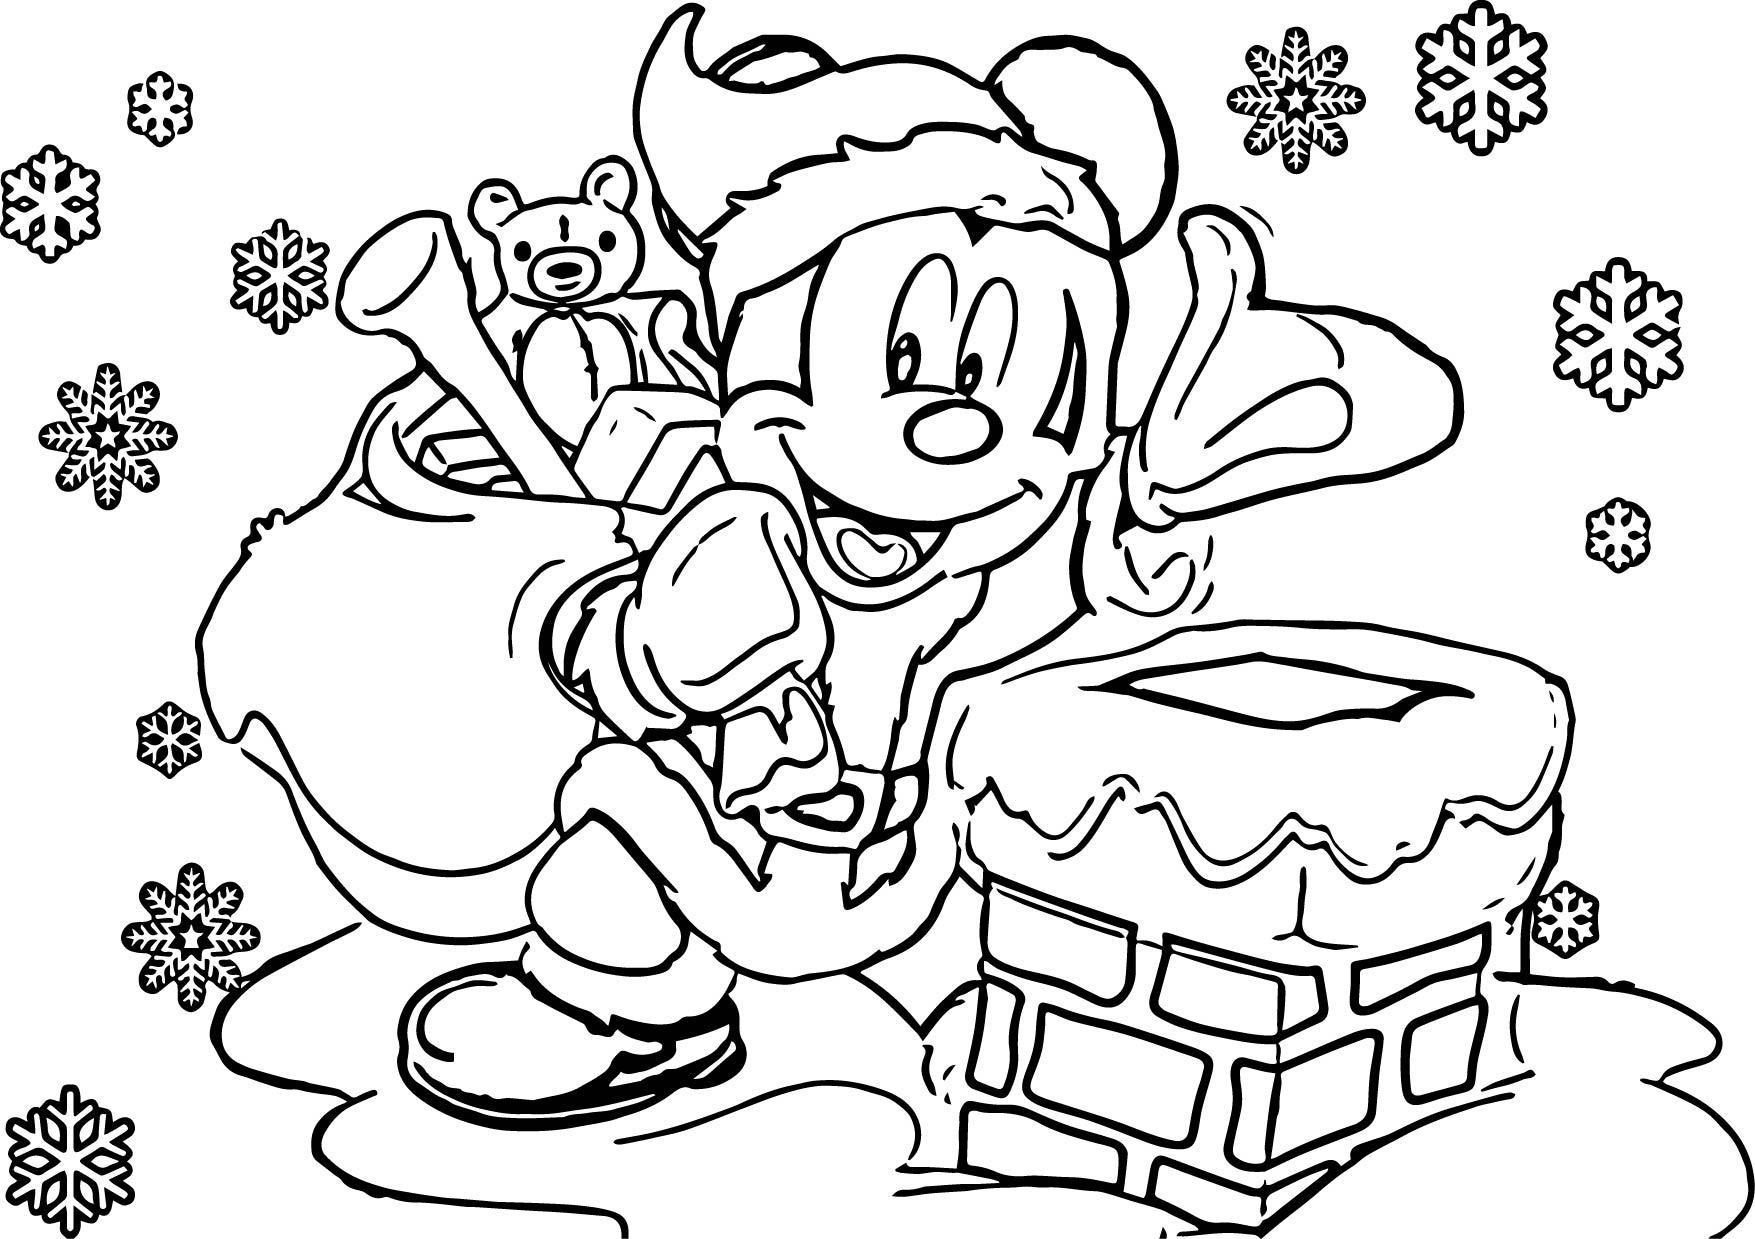 Christmas Coloring In Templates With Sheets Business Template Idea